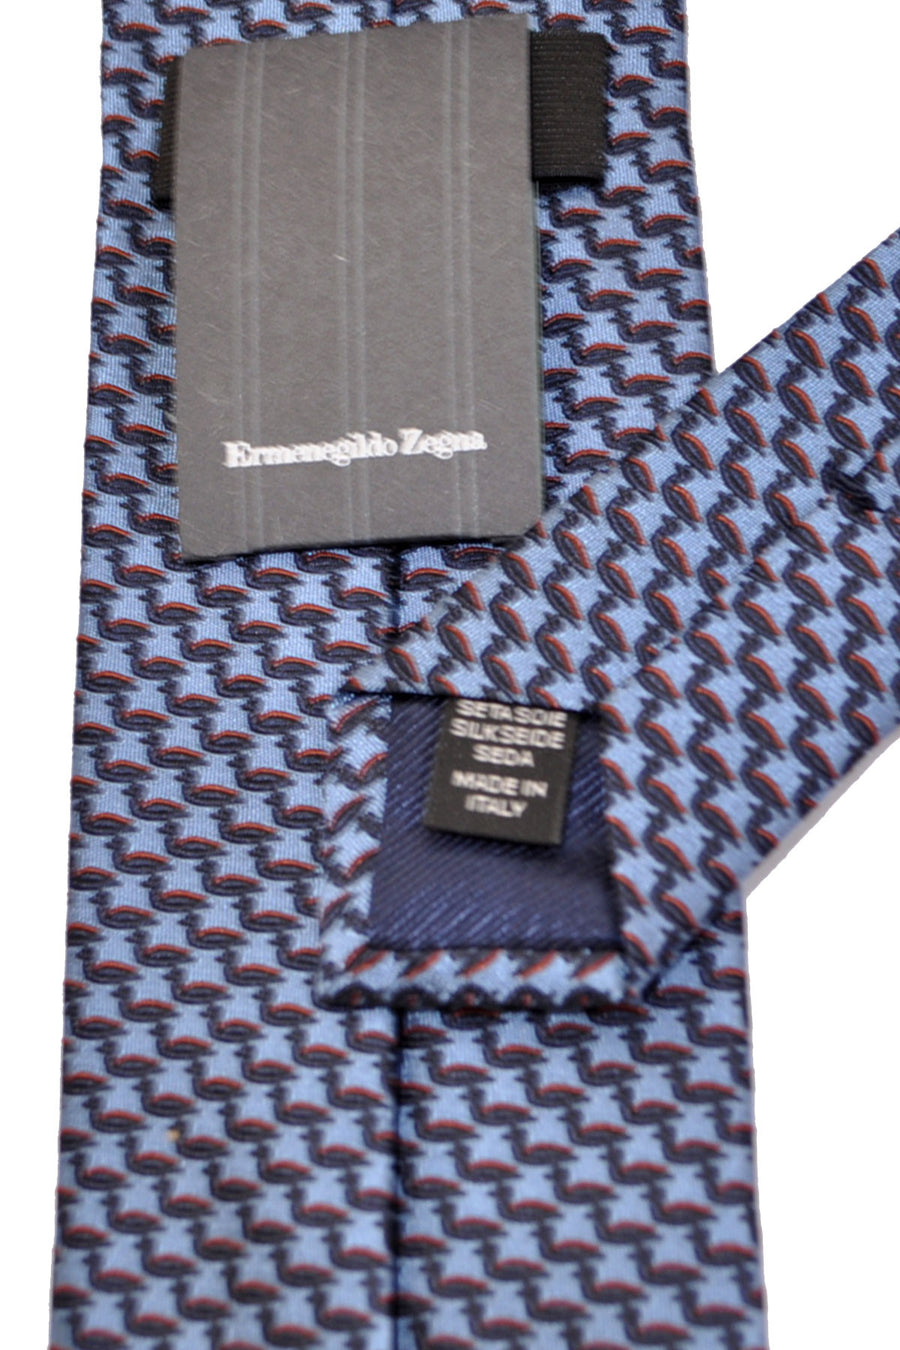 Ermenegildo Zegna Tie Blue Navy Brown Ducks